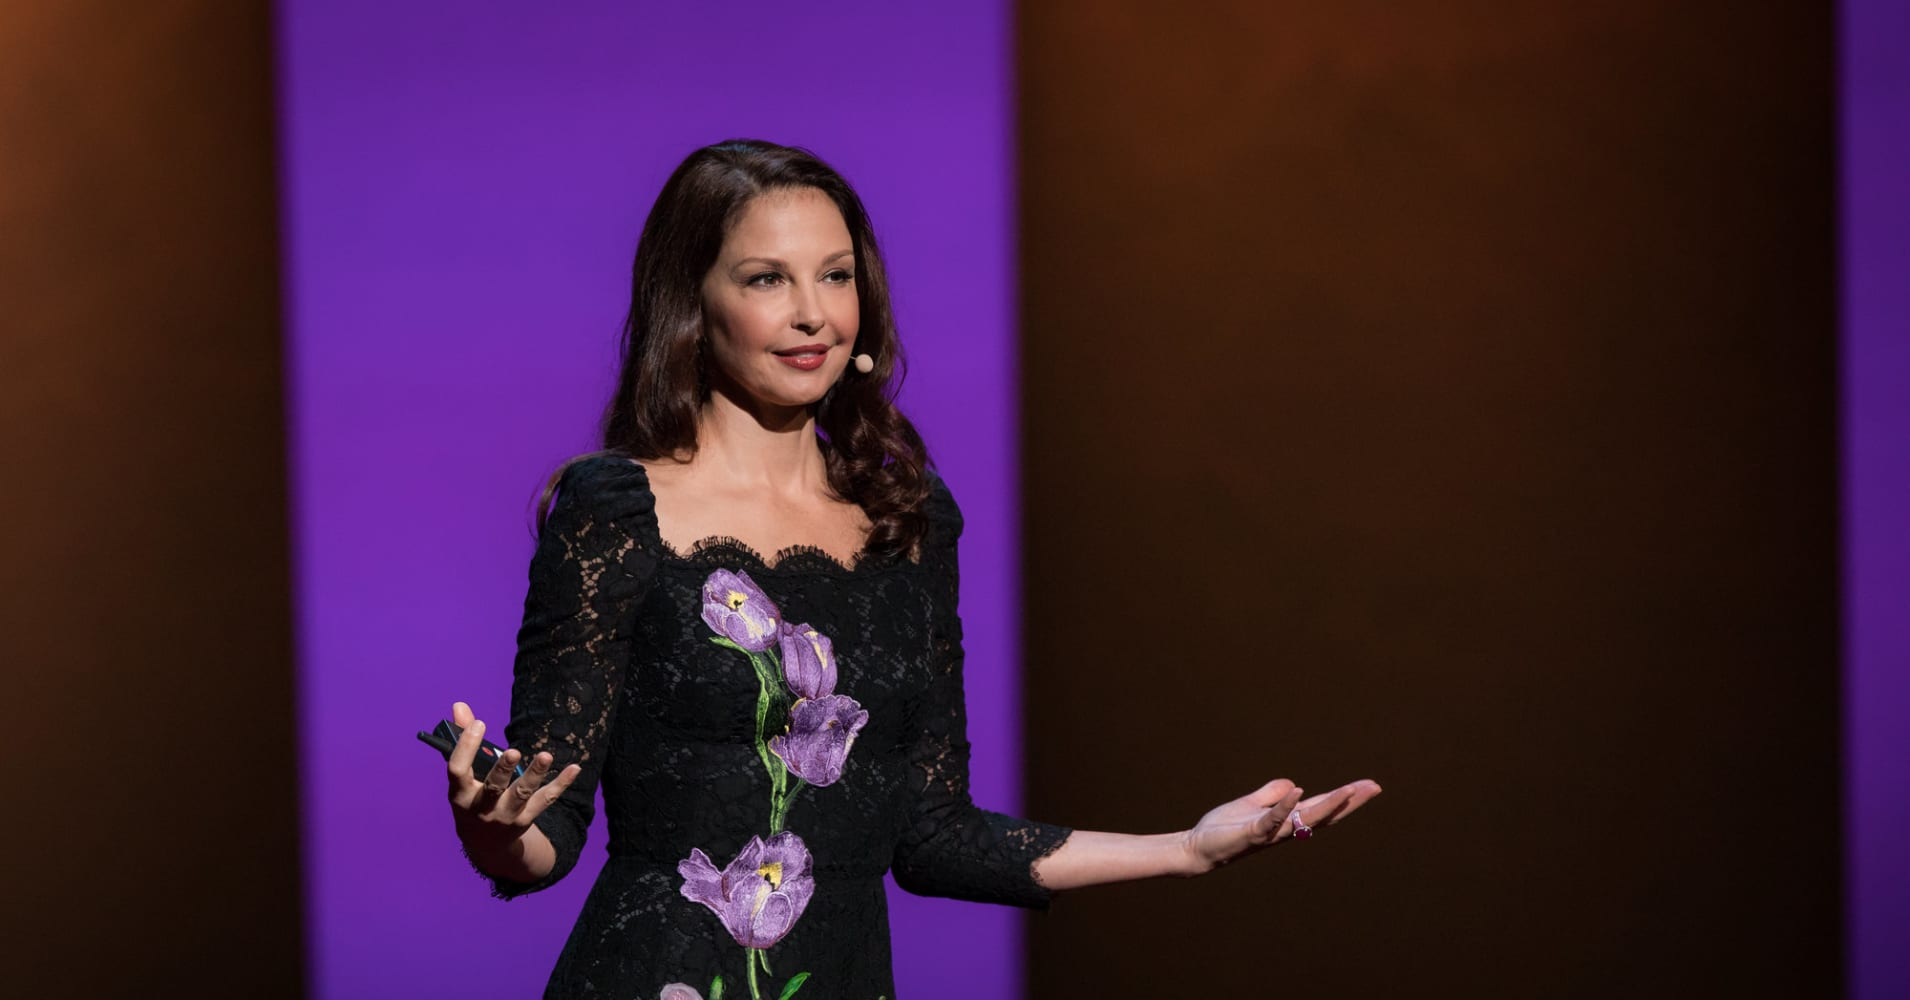 Actor and activist Ashley Judd